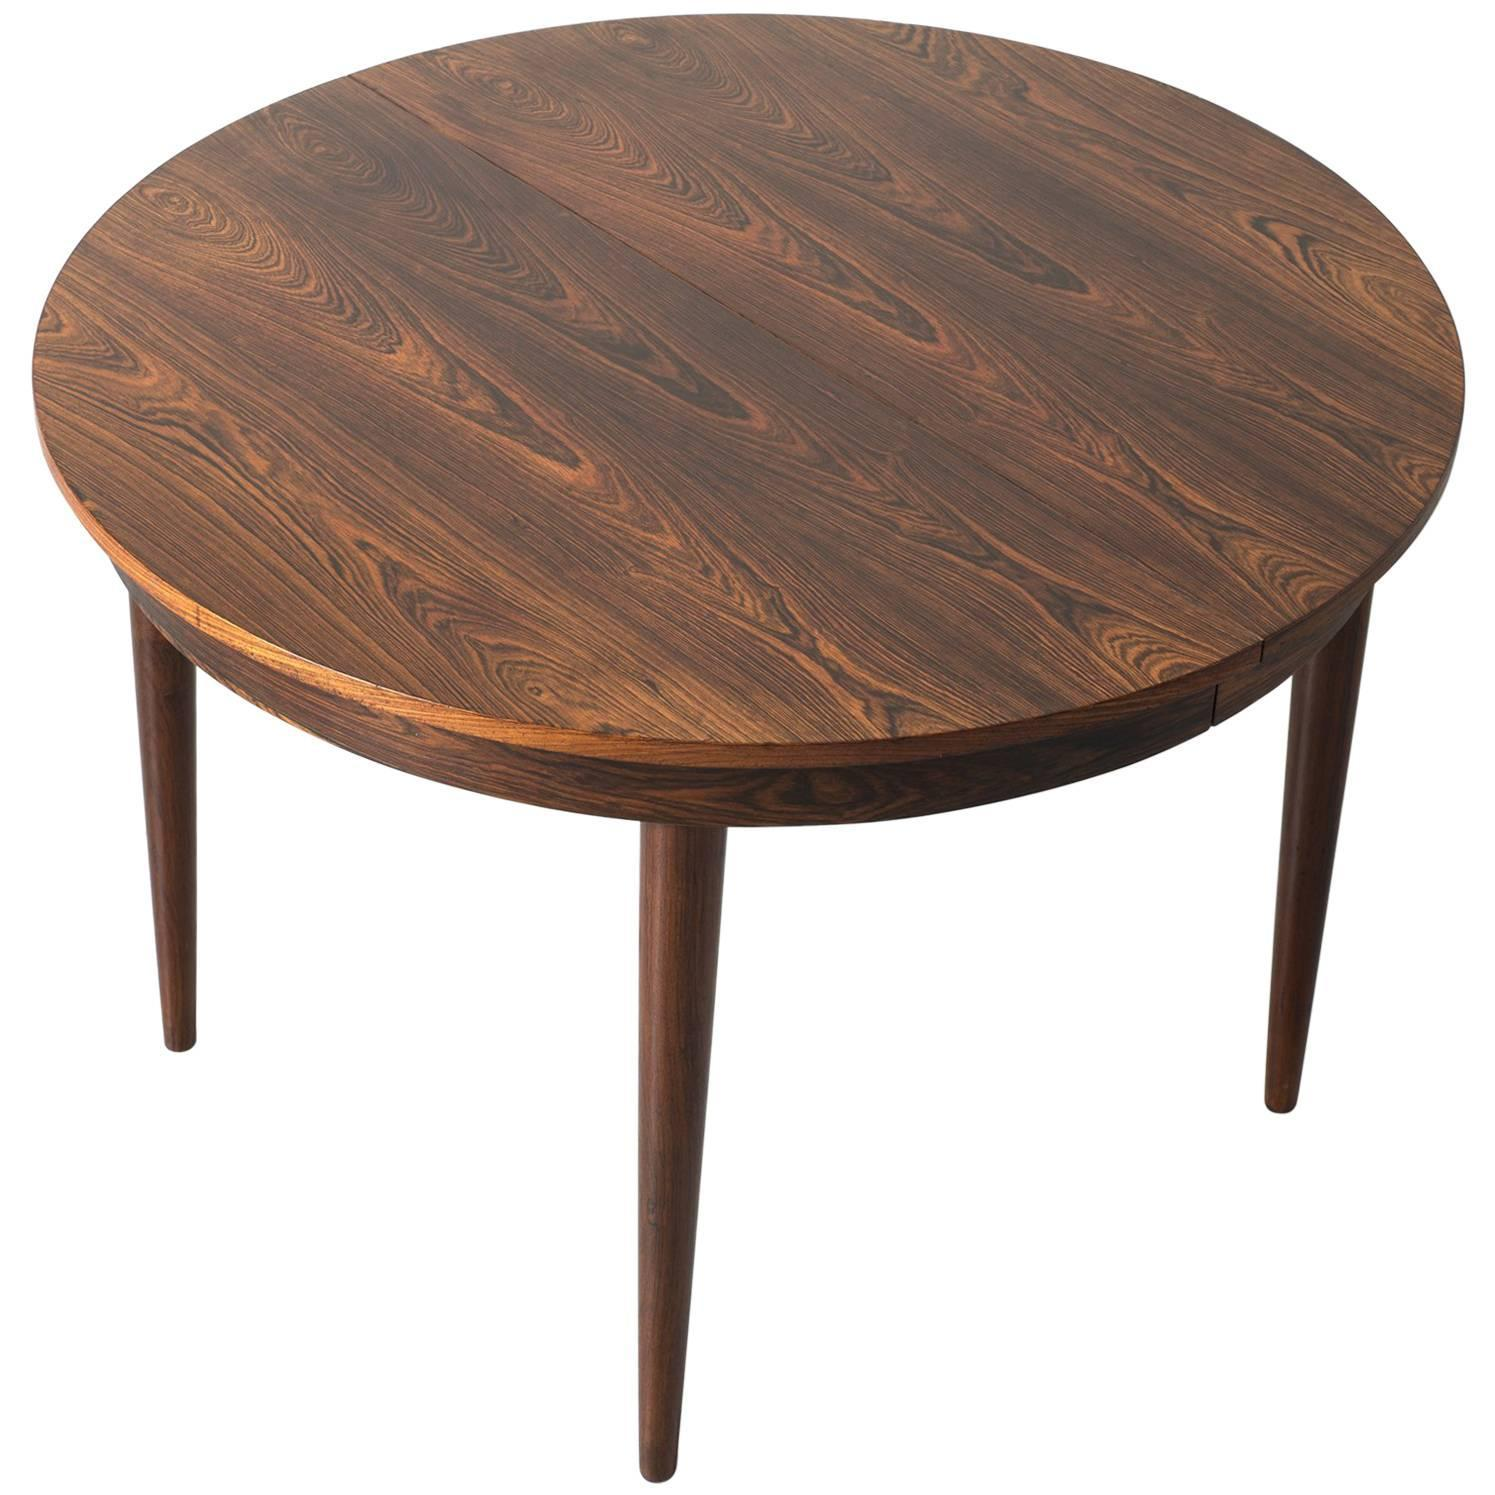 Round Hans Olsen Rosewood Dining Table With Extension Leaf